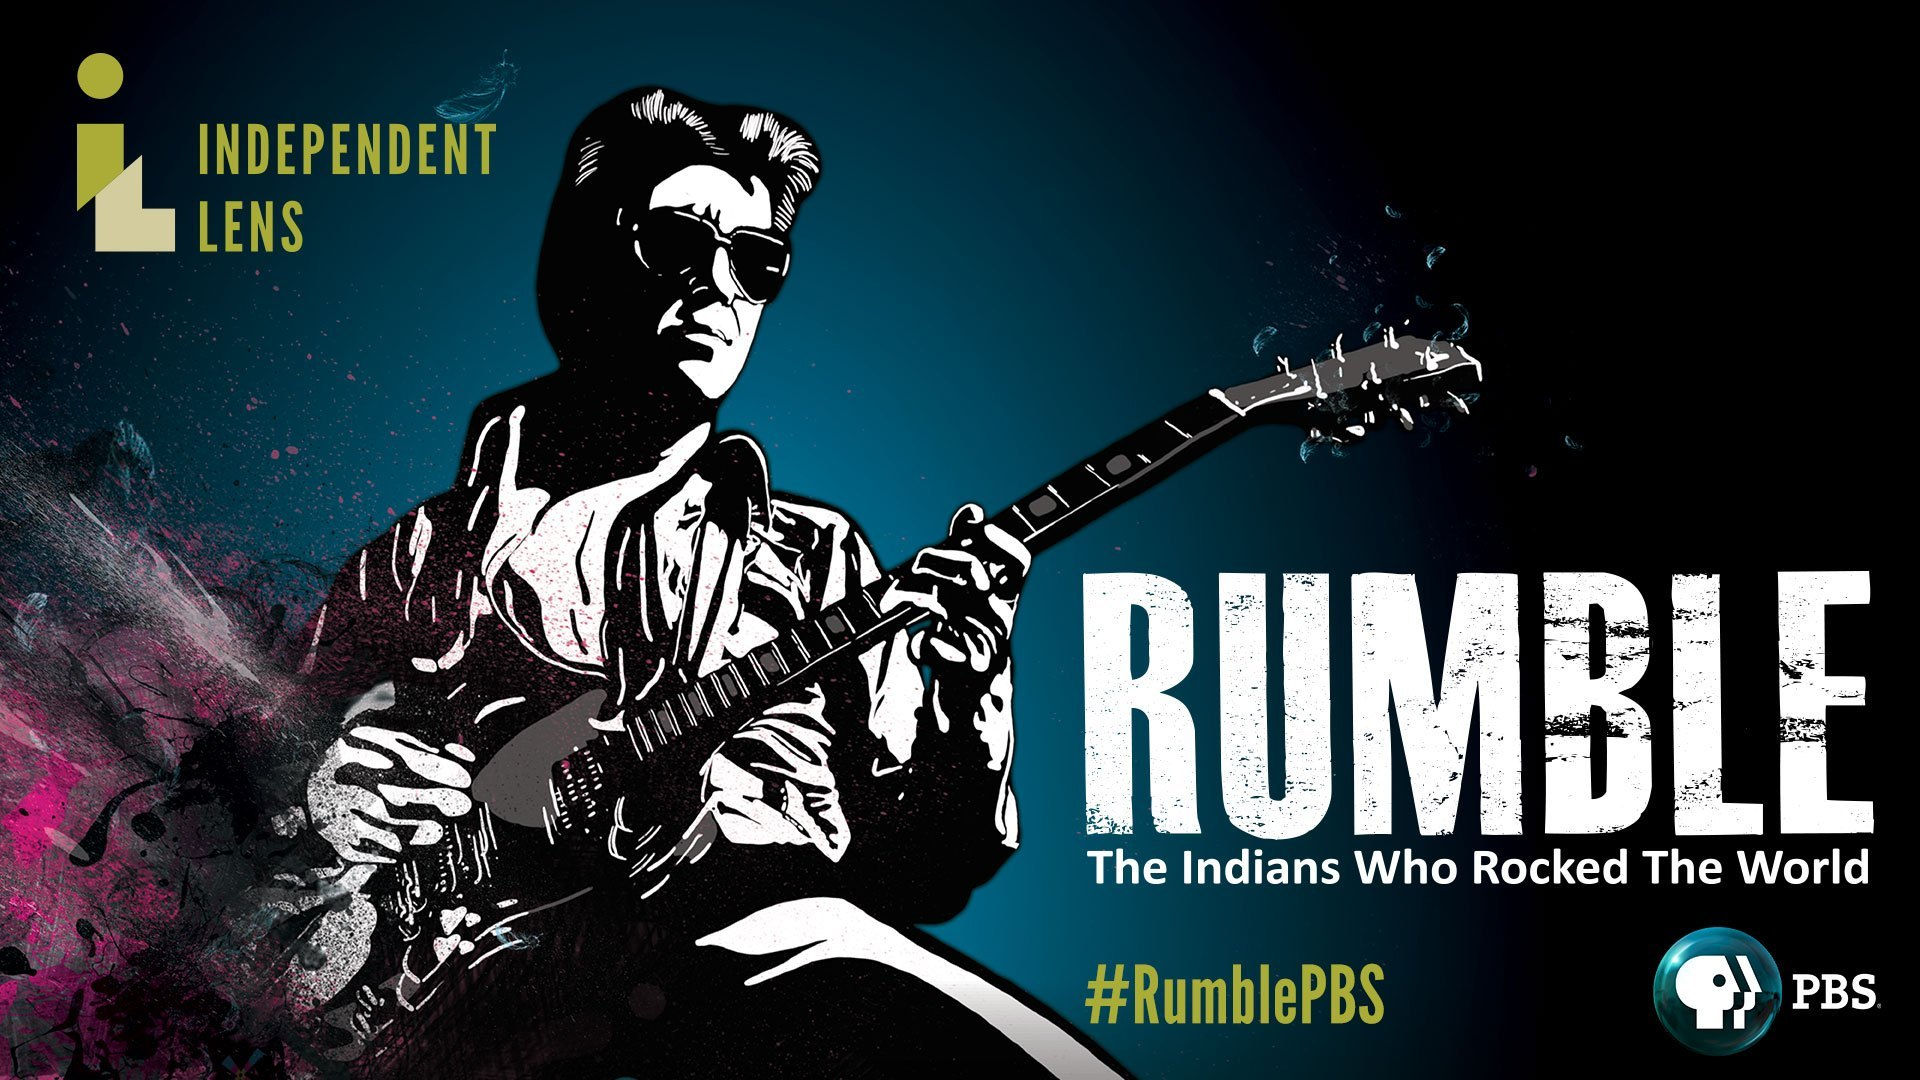 Independent Lens - Rumble: The Indians Who Rocked The World